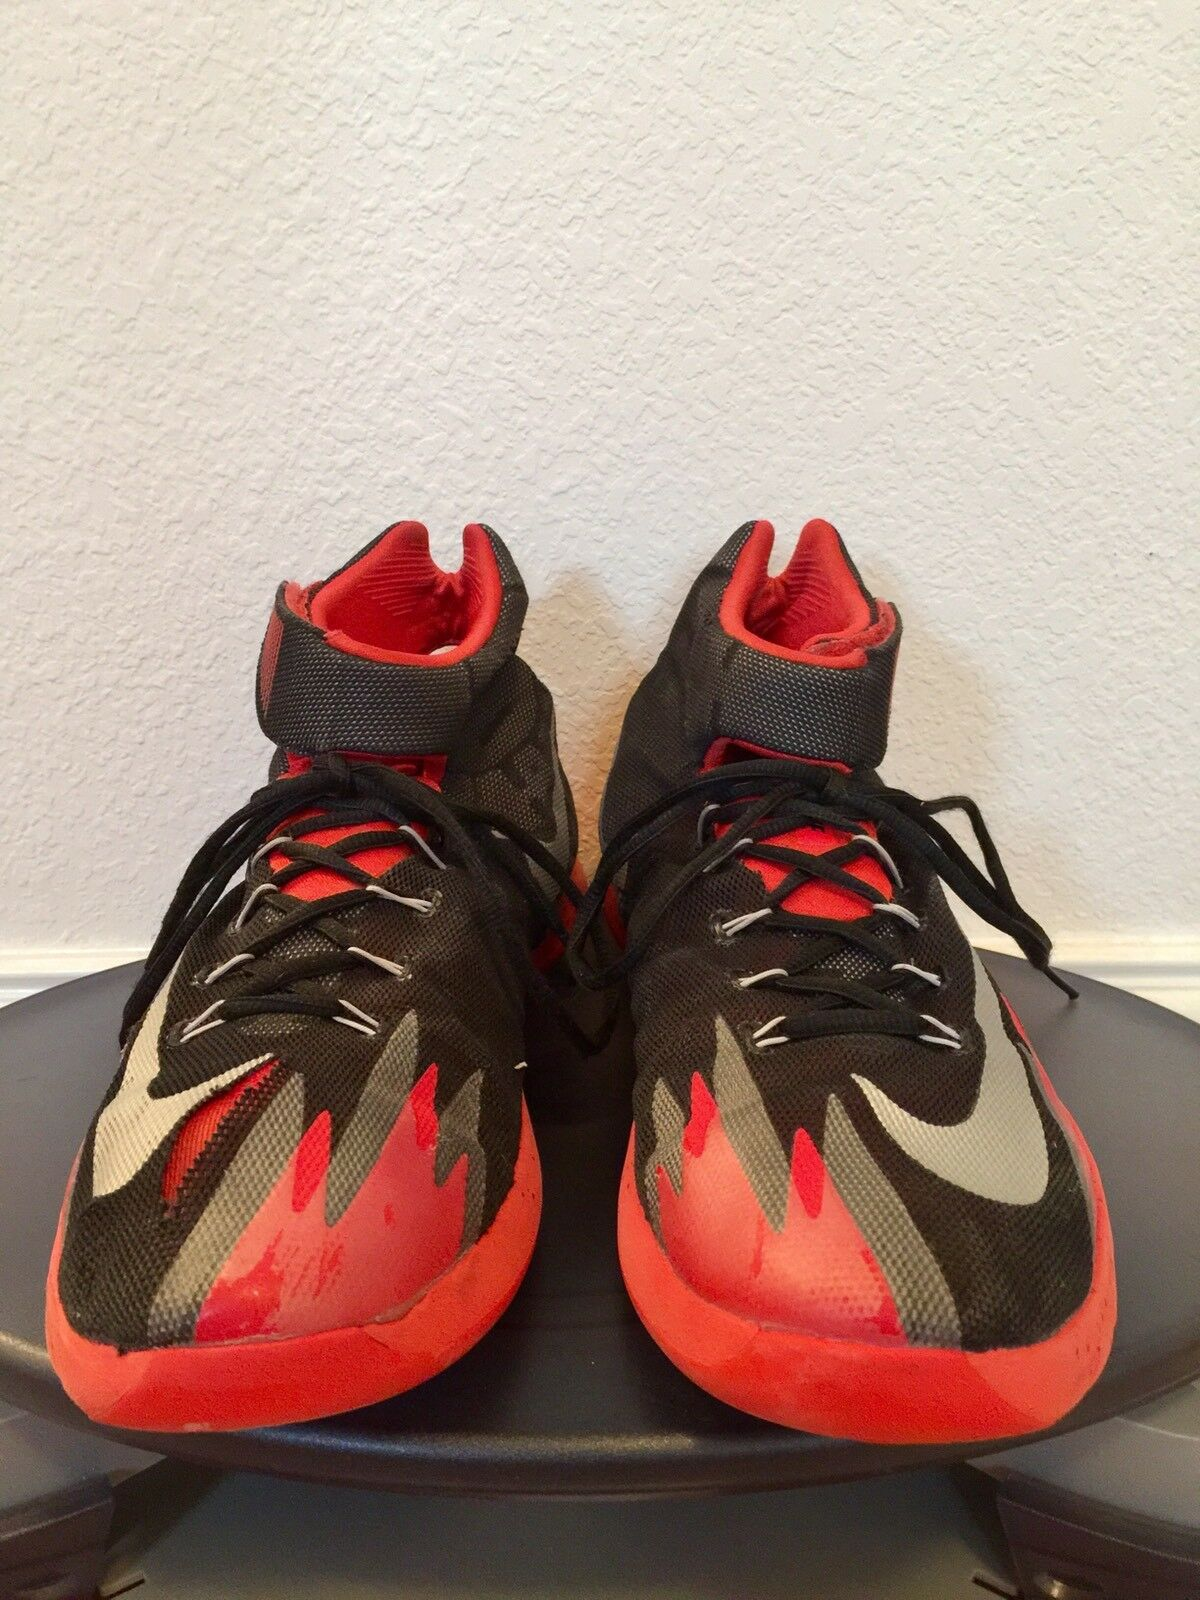 NIKE ZOOM HYPERREV BLACK RED GRAY BASKETBALL SHOES Men's Sz 11